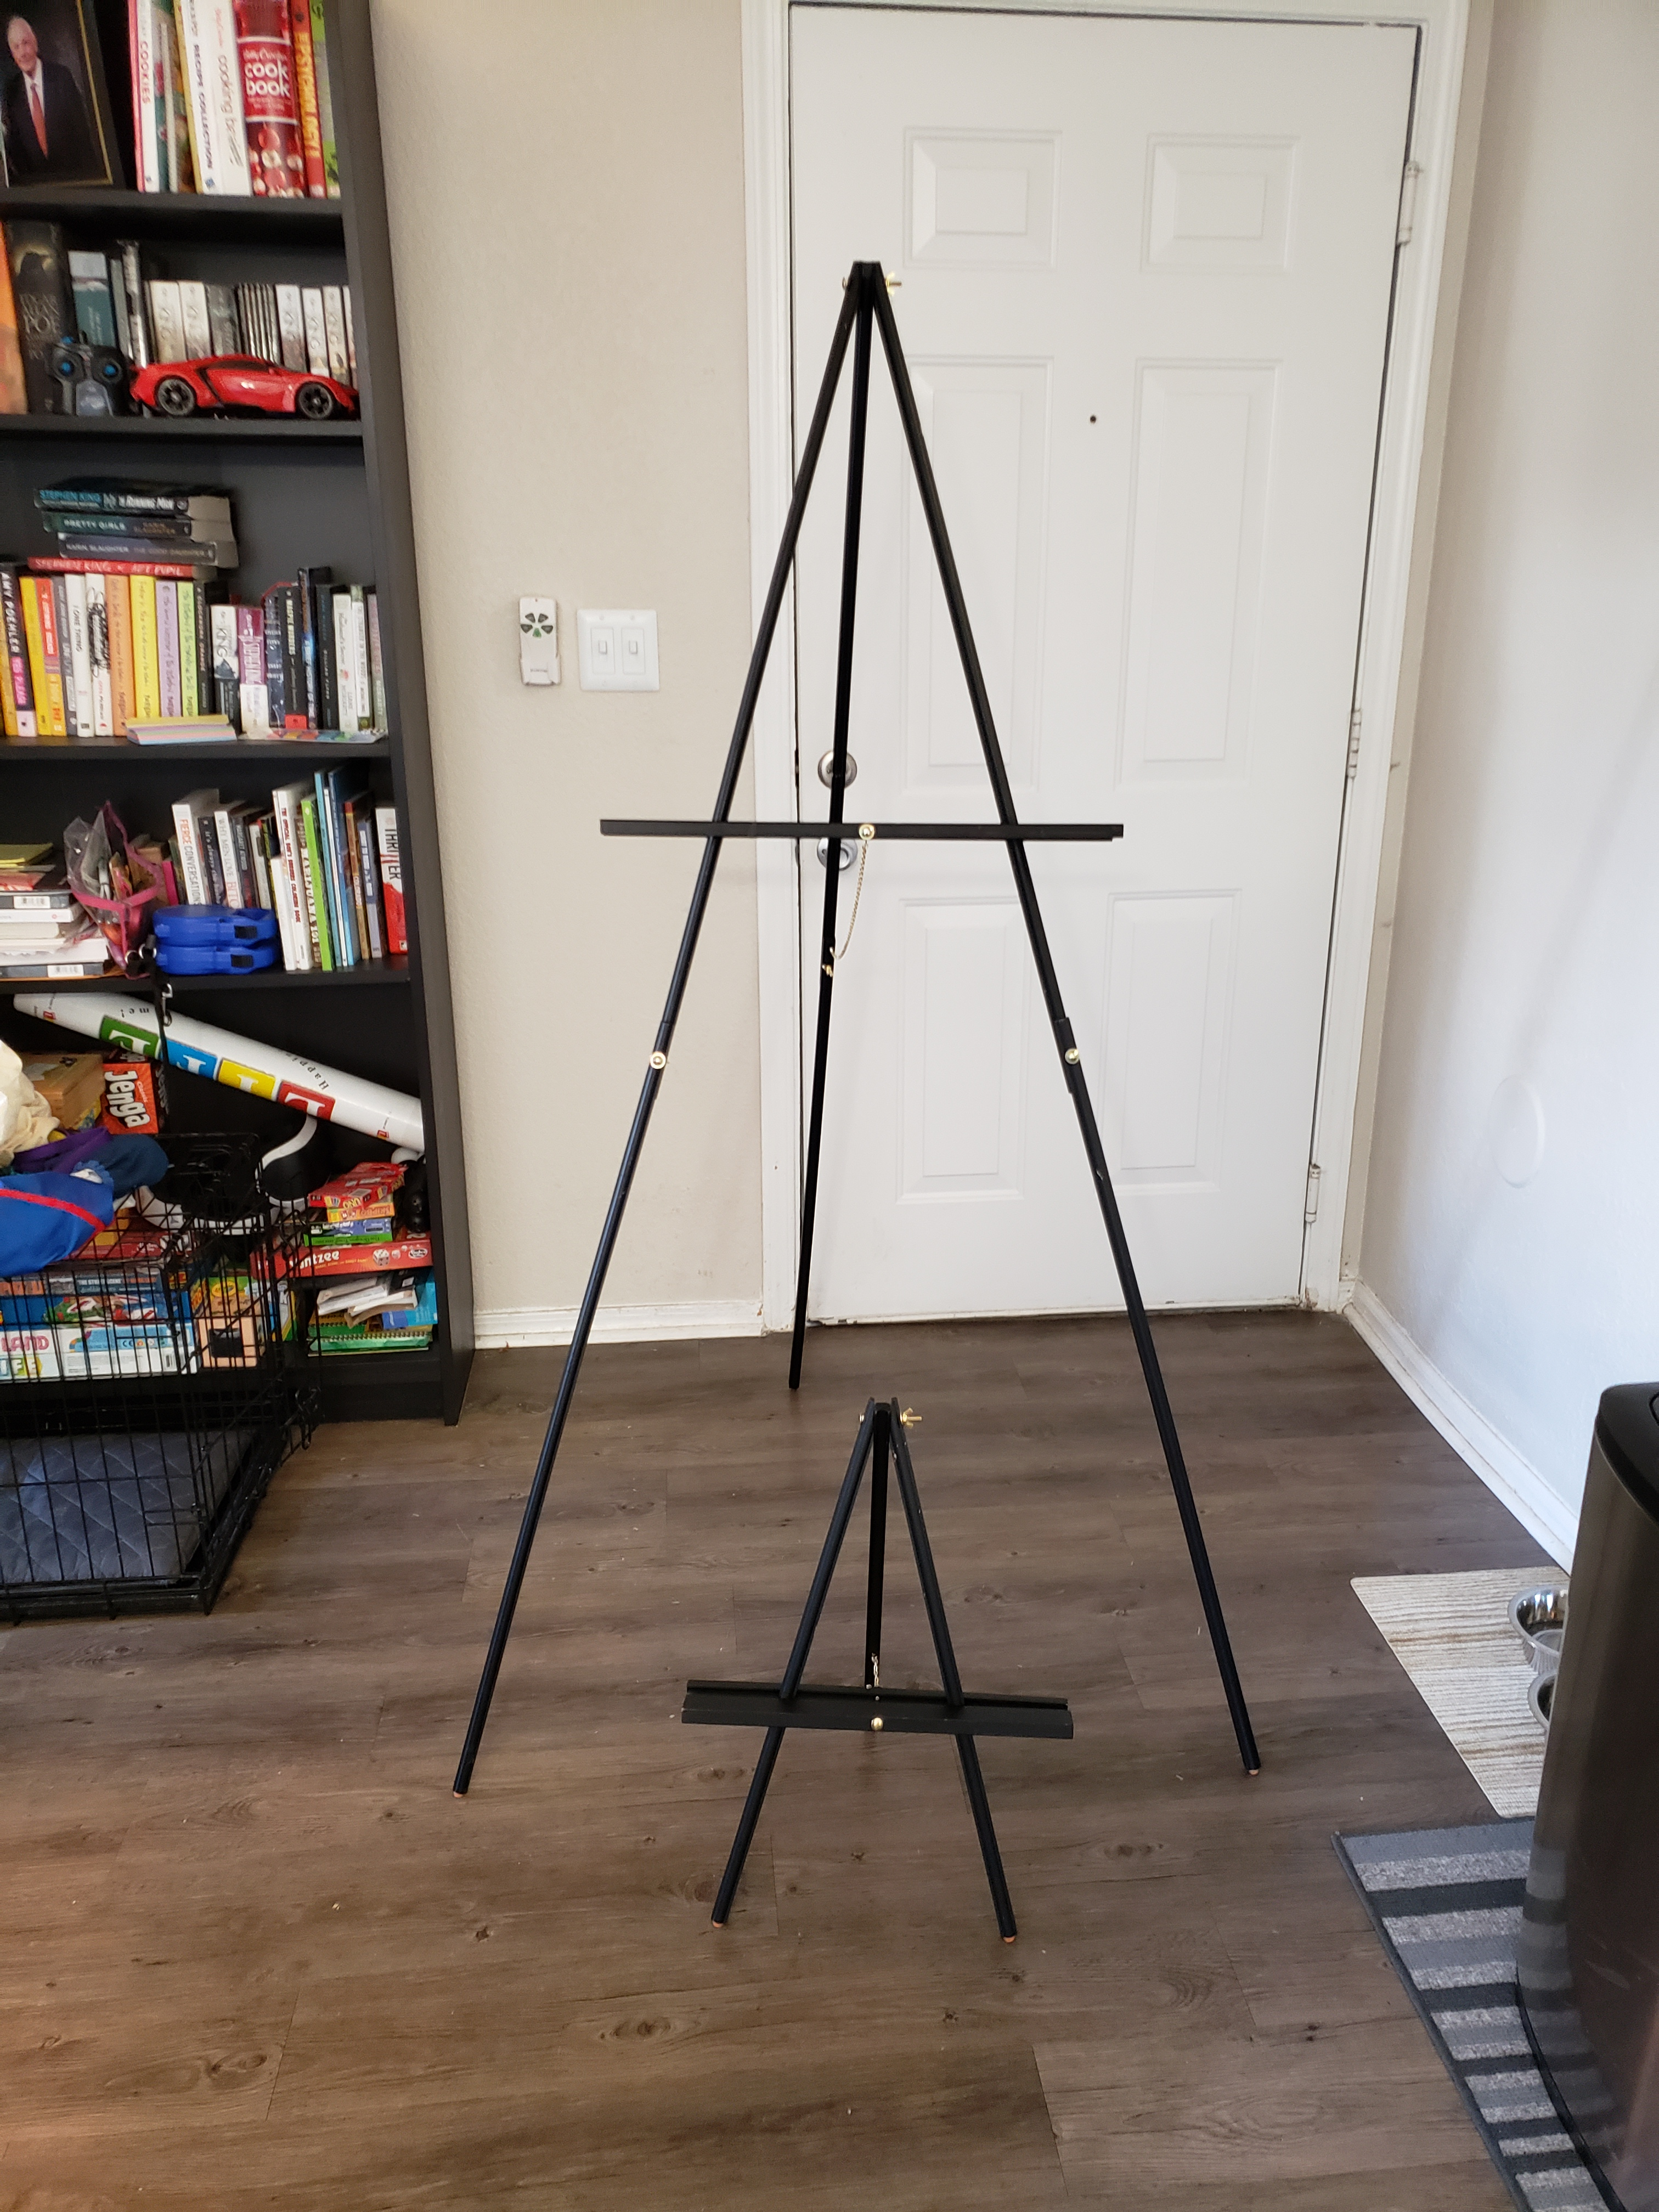 Black Easels For Signs (2 64 Inch Height, 1 21 Inch Height)